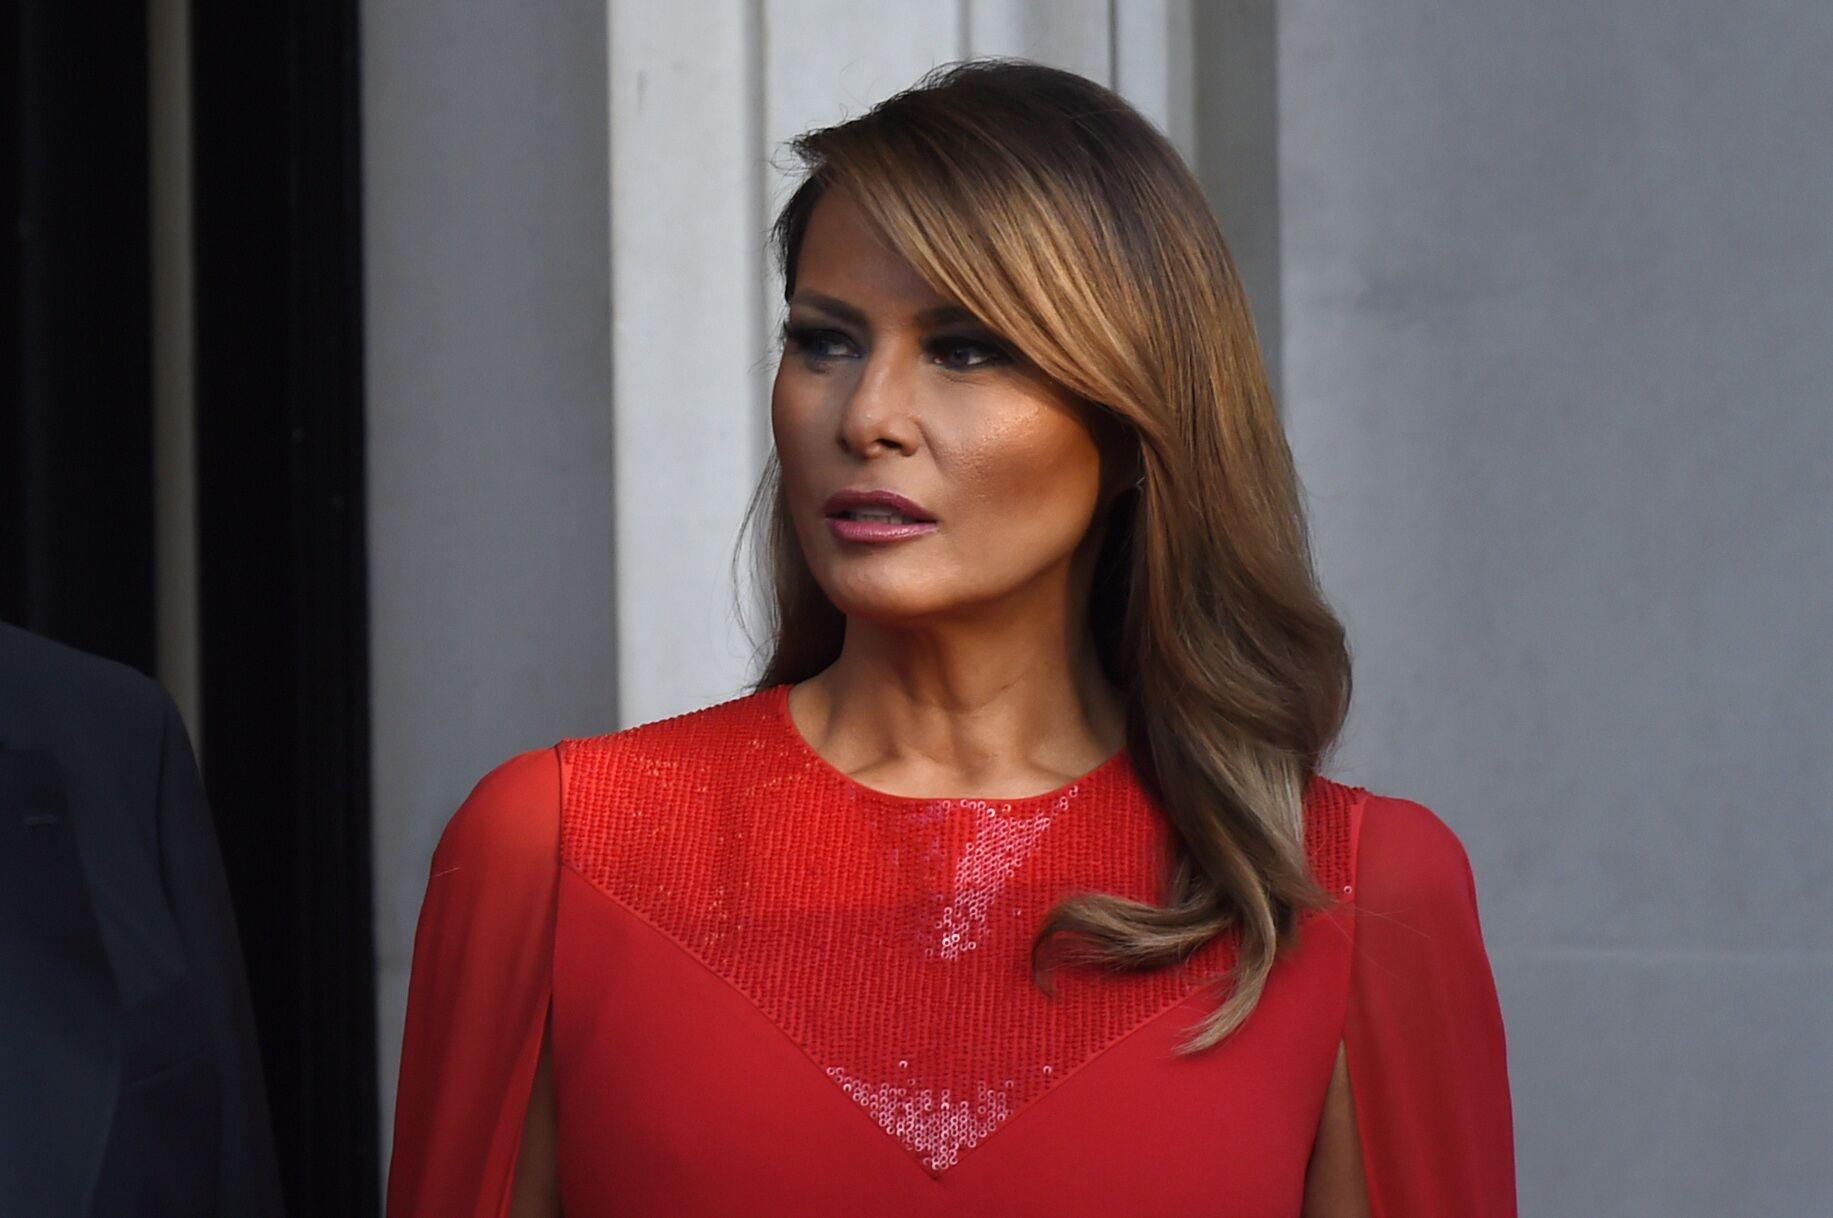 First Lady Melania Trump poses ahead of a dinner at Winfield House for Prince Charles, Prince of Wales and Camilla, Duchess of Cornwall, during their state visit on June 04, 2019 | Photo: Getty Images